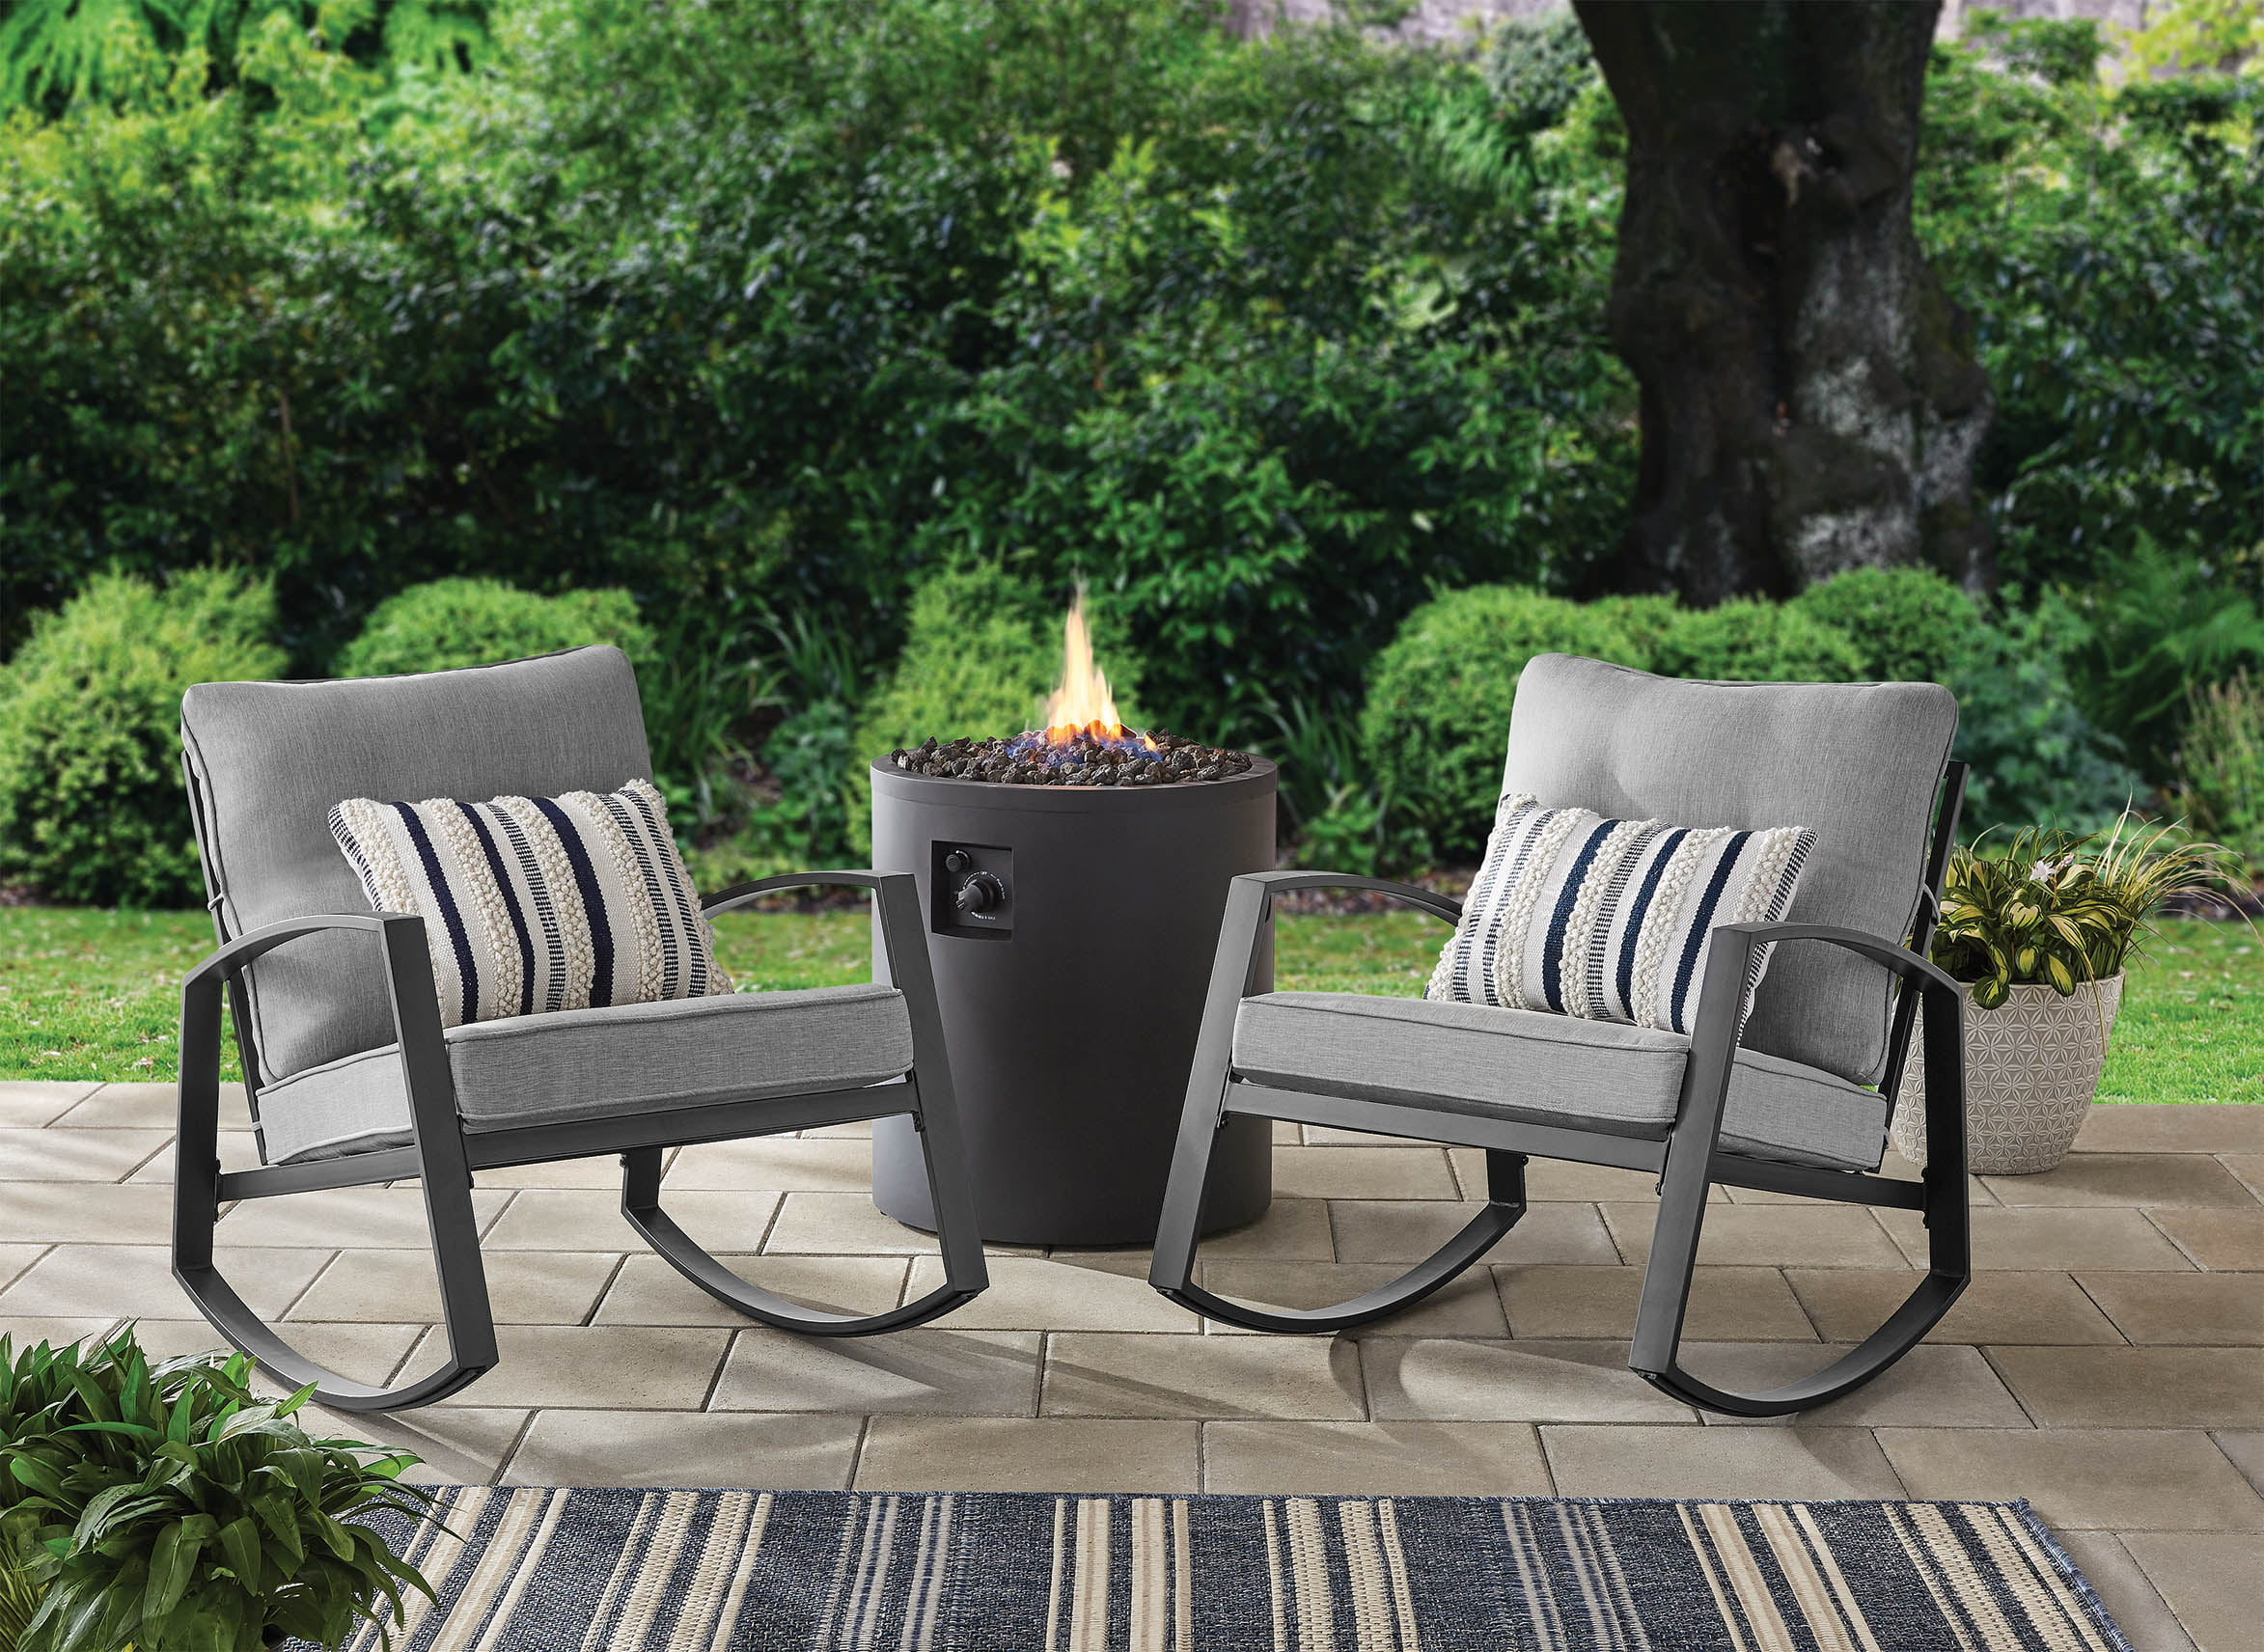 mainstays asher springs 2 piece steel cushioned rocking chair set grey